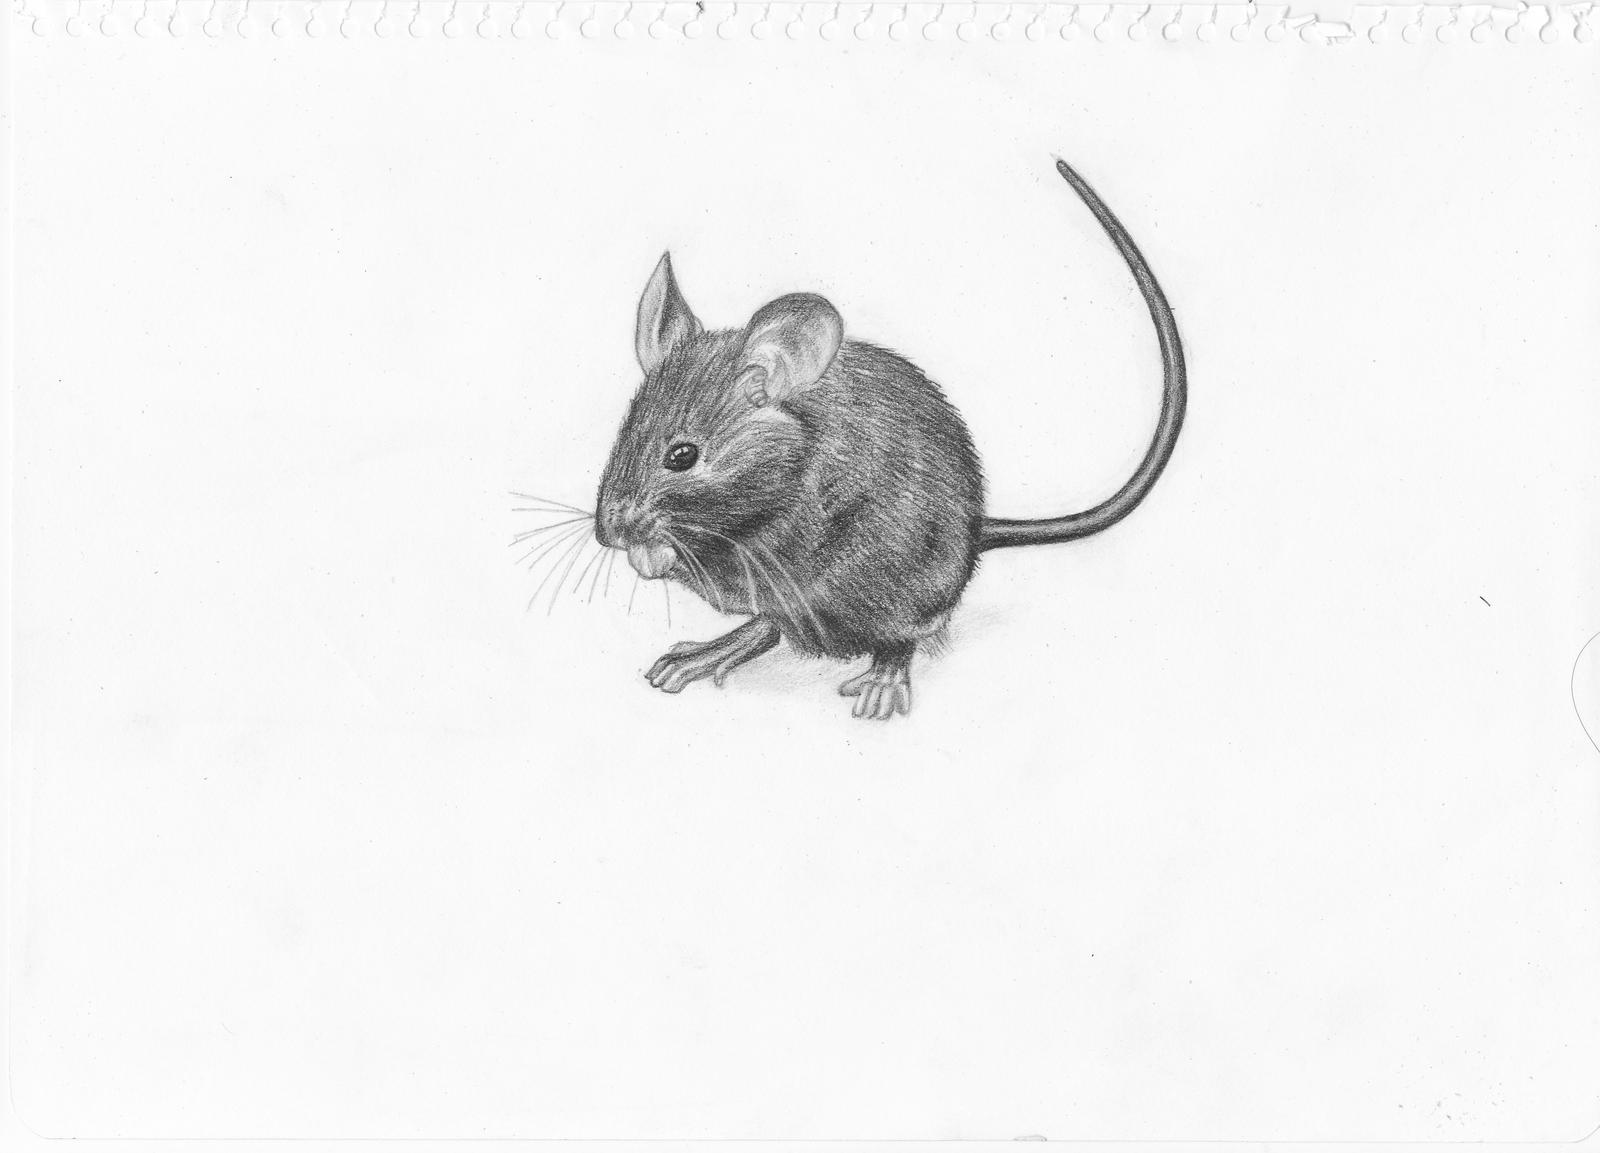 Uncategorized Mouse Drawings mouse drawing by adonabauer on deviantart adonabauer